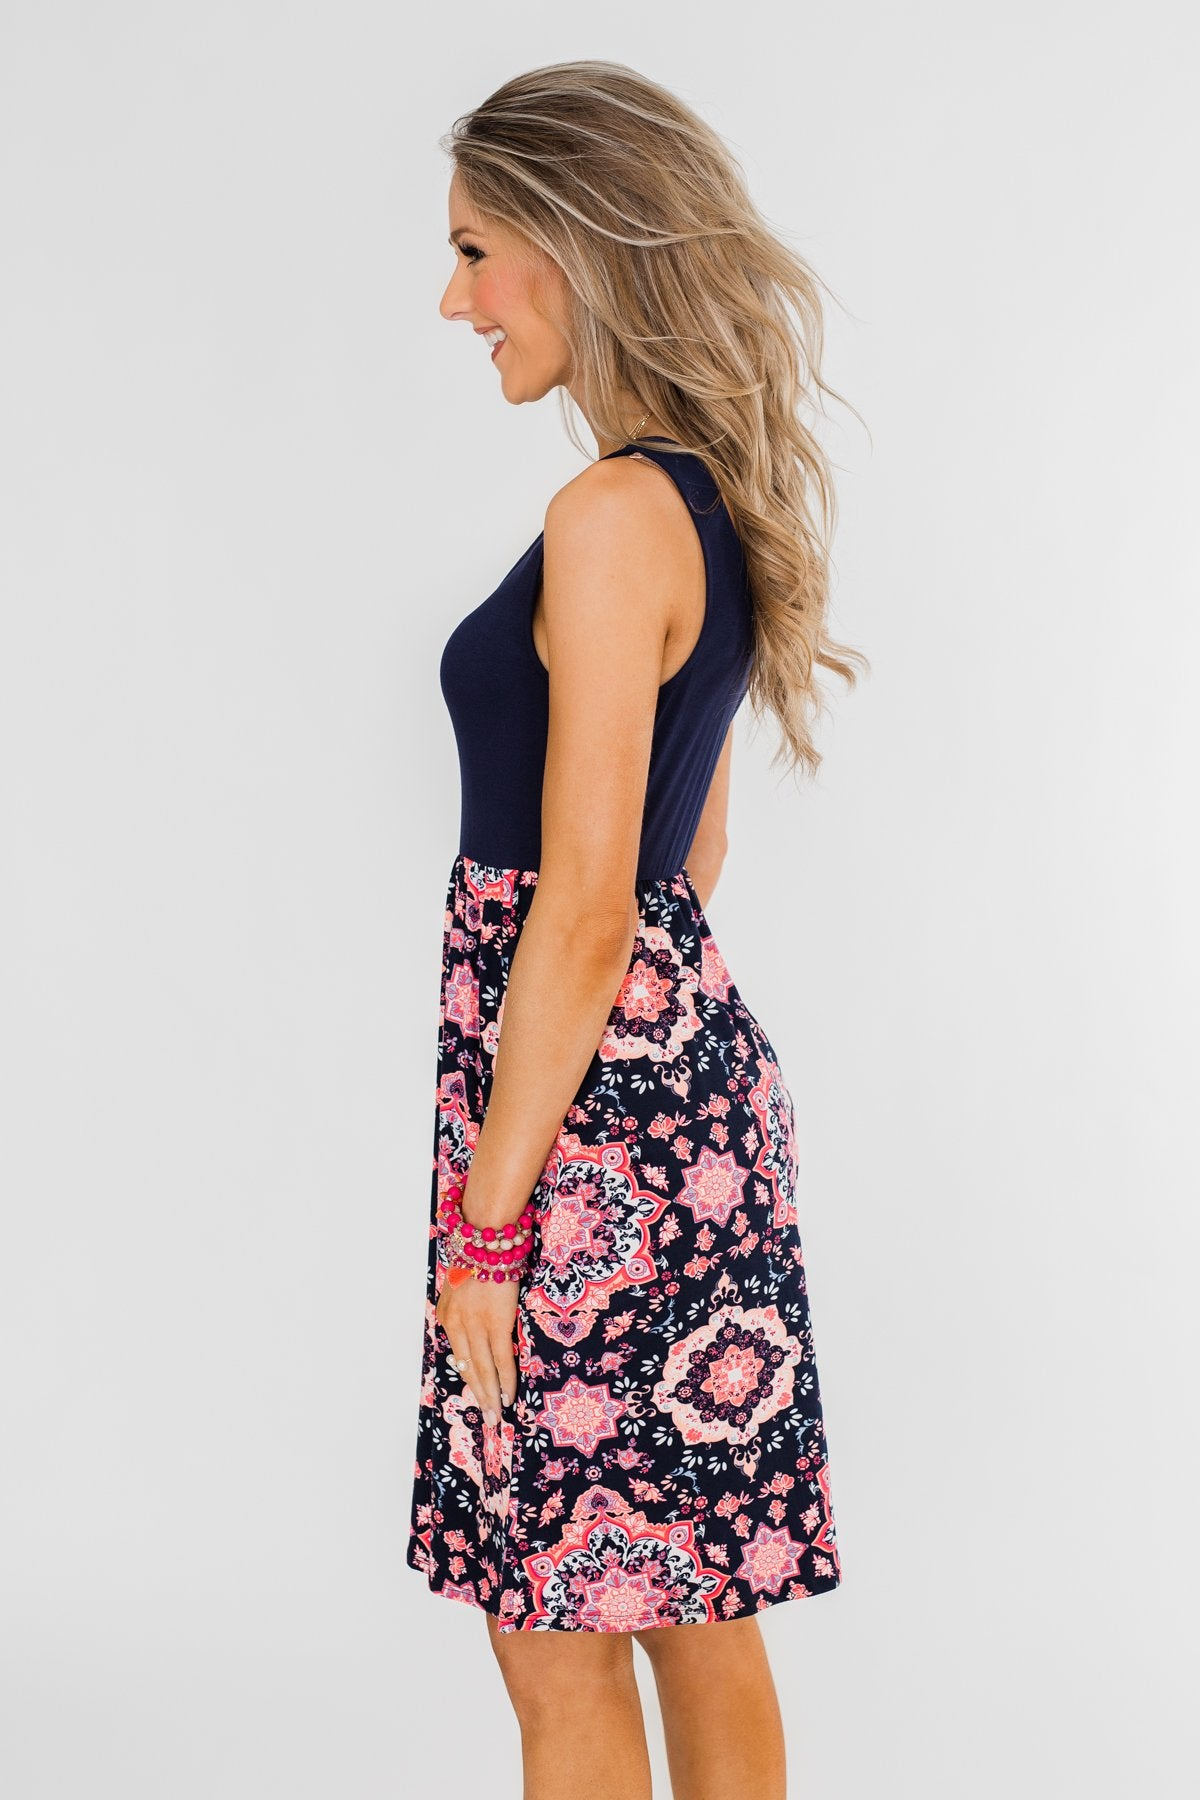 Full of Excitement Printed Dress- Navy